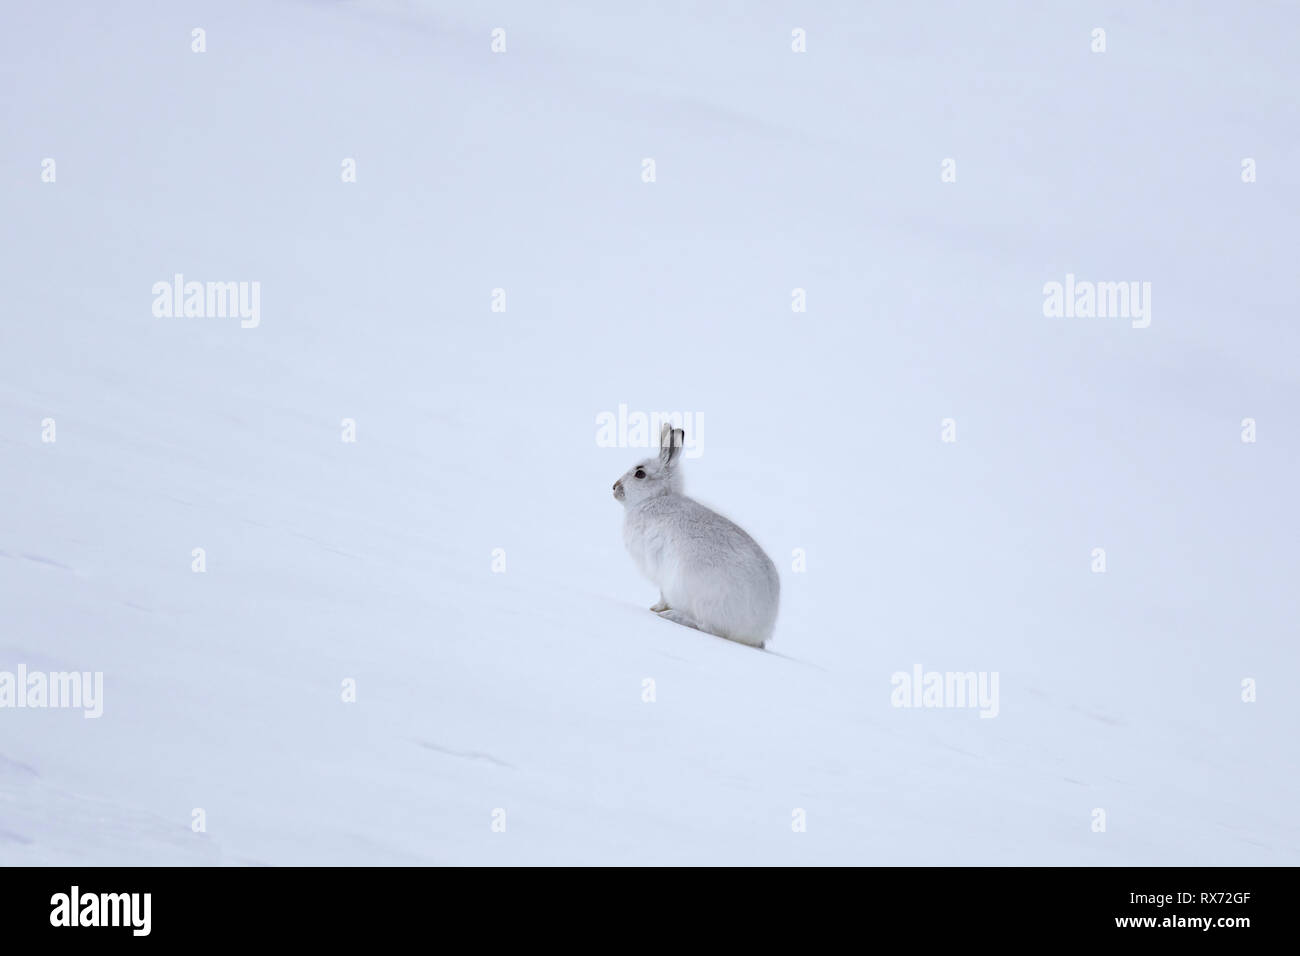 Mountain hare / Alpine hare / snow hare (Lepus timidus) in white winter pelage in the Scottish Highlands, Scotland, UK - Stock Image